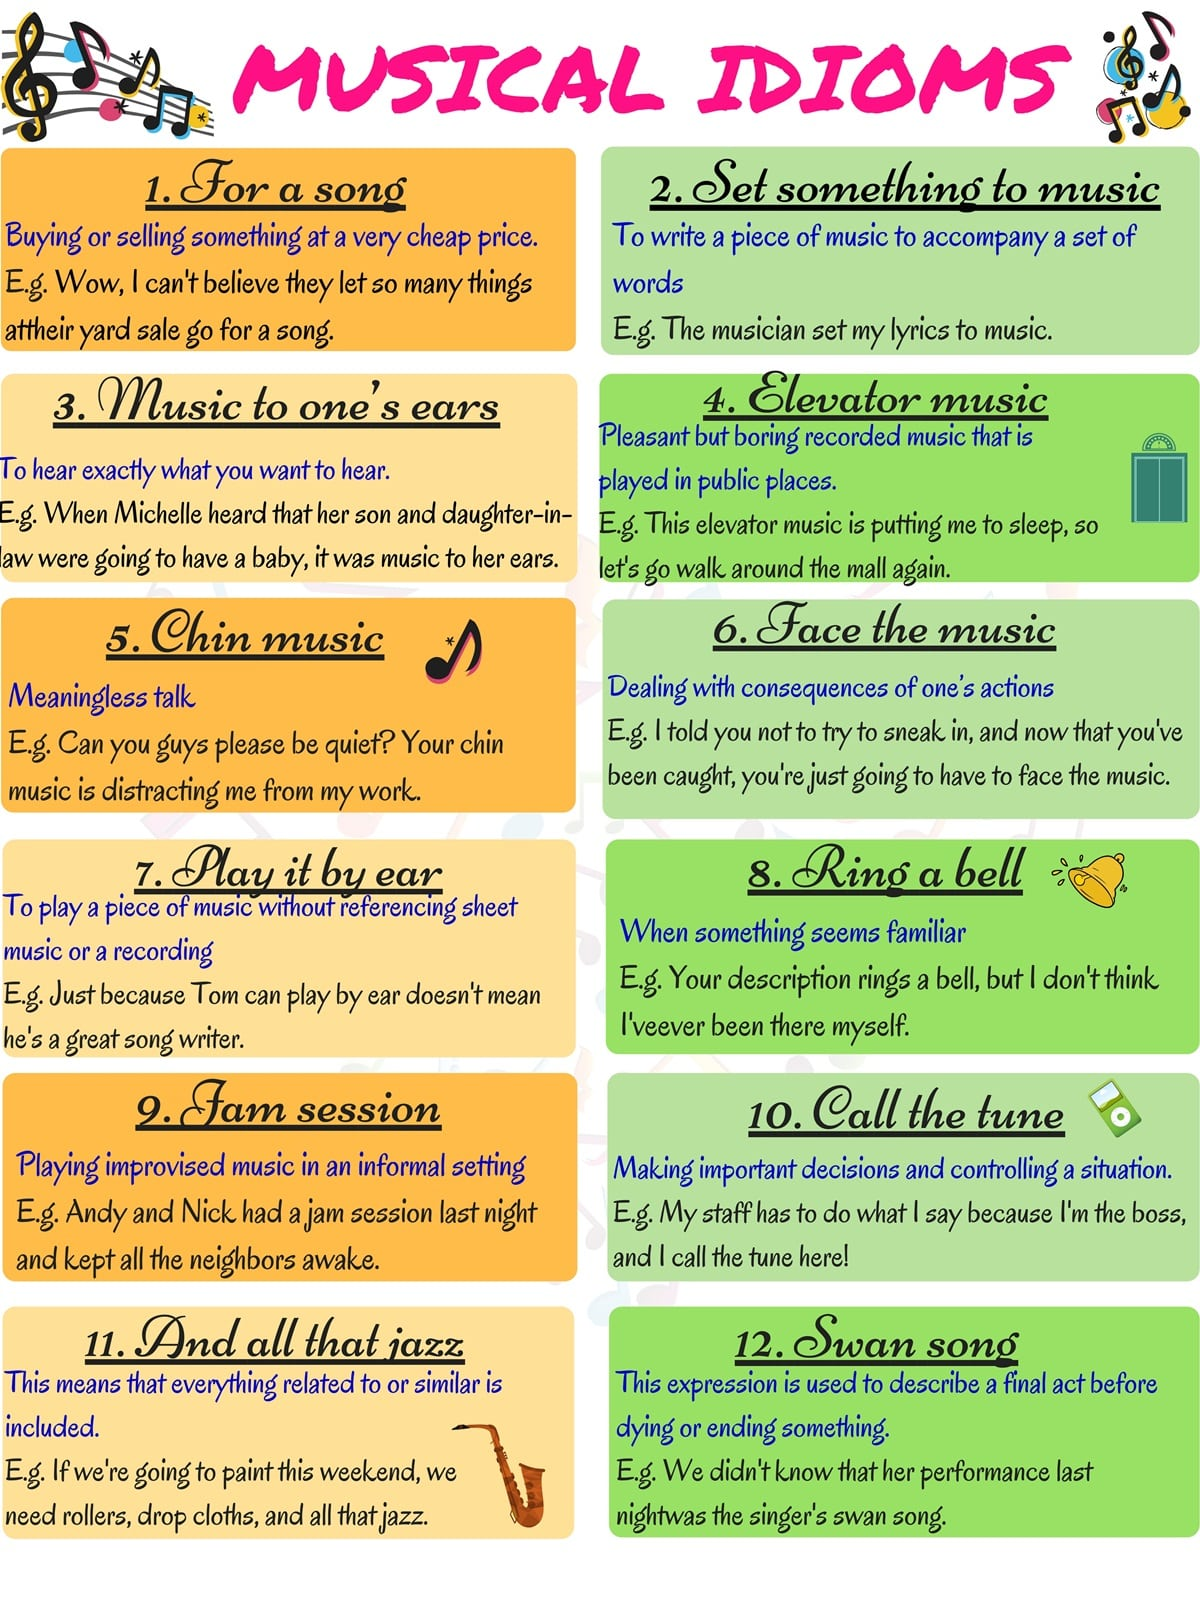 Learn 15+ Useful Idioms Related to Music in English